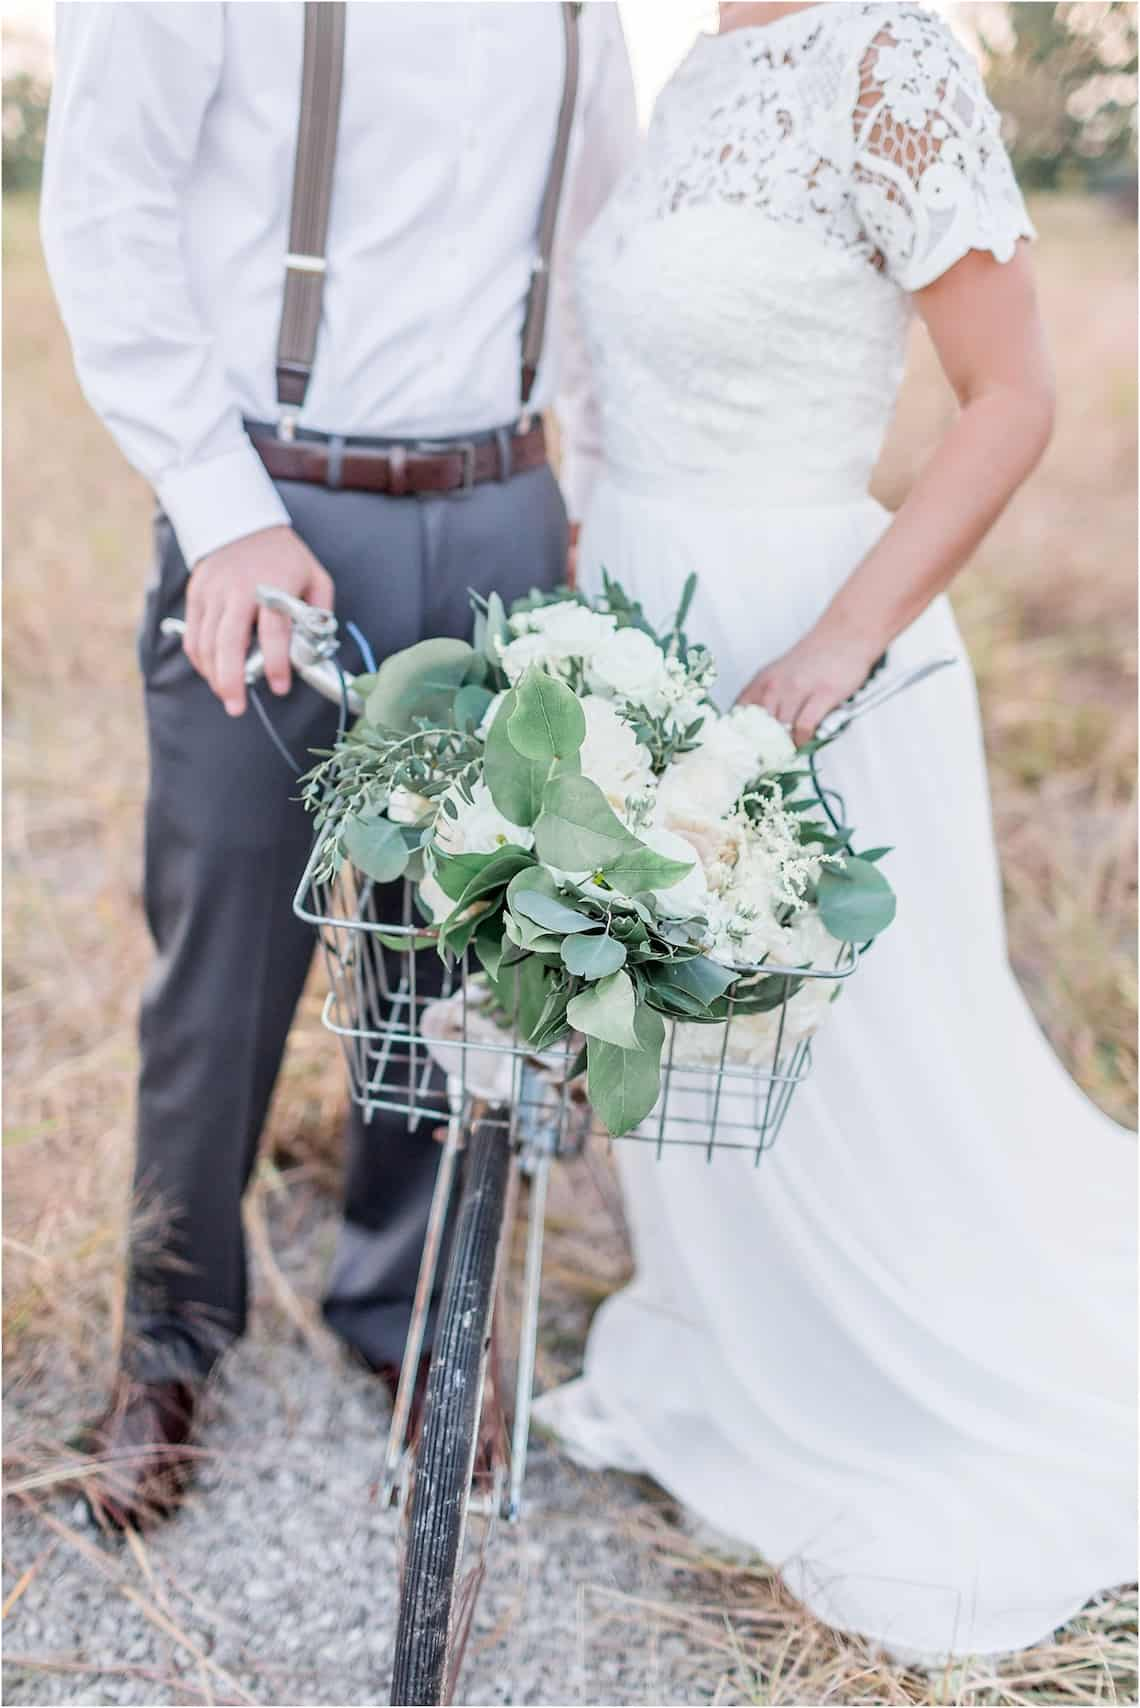 Wedding Bicycle with Flowers